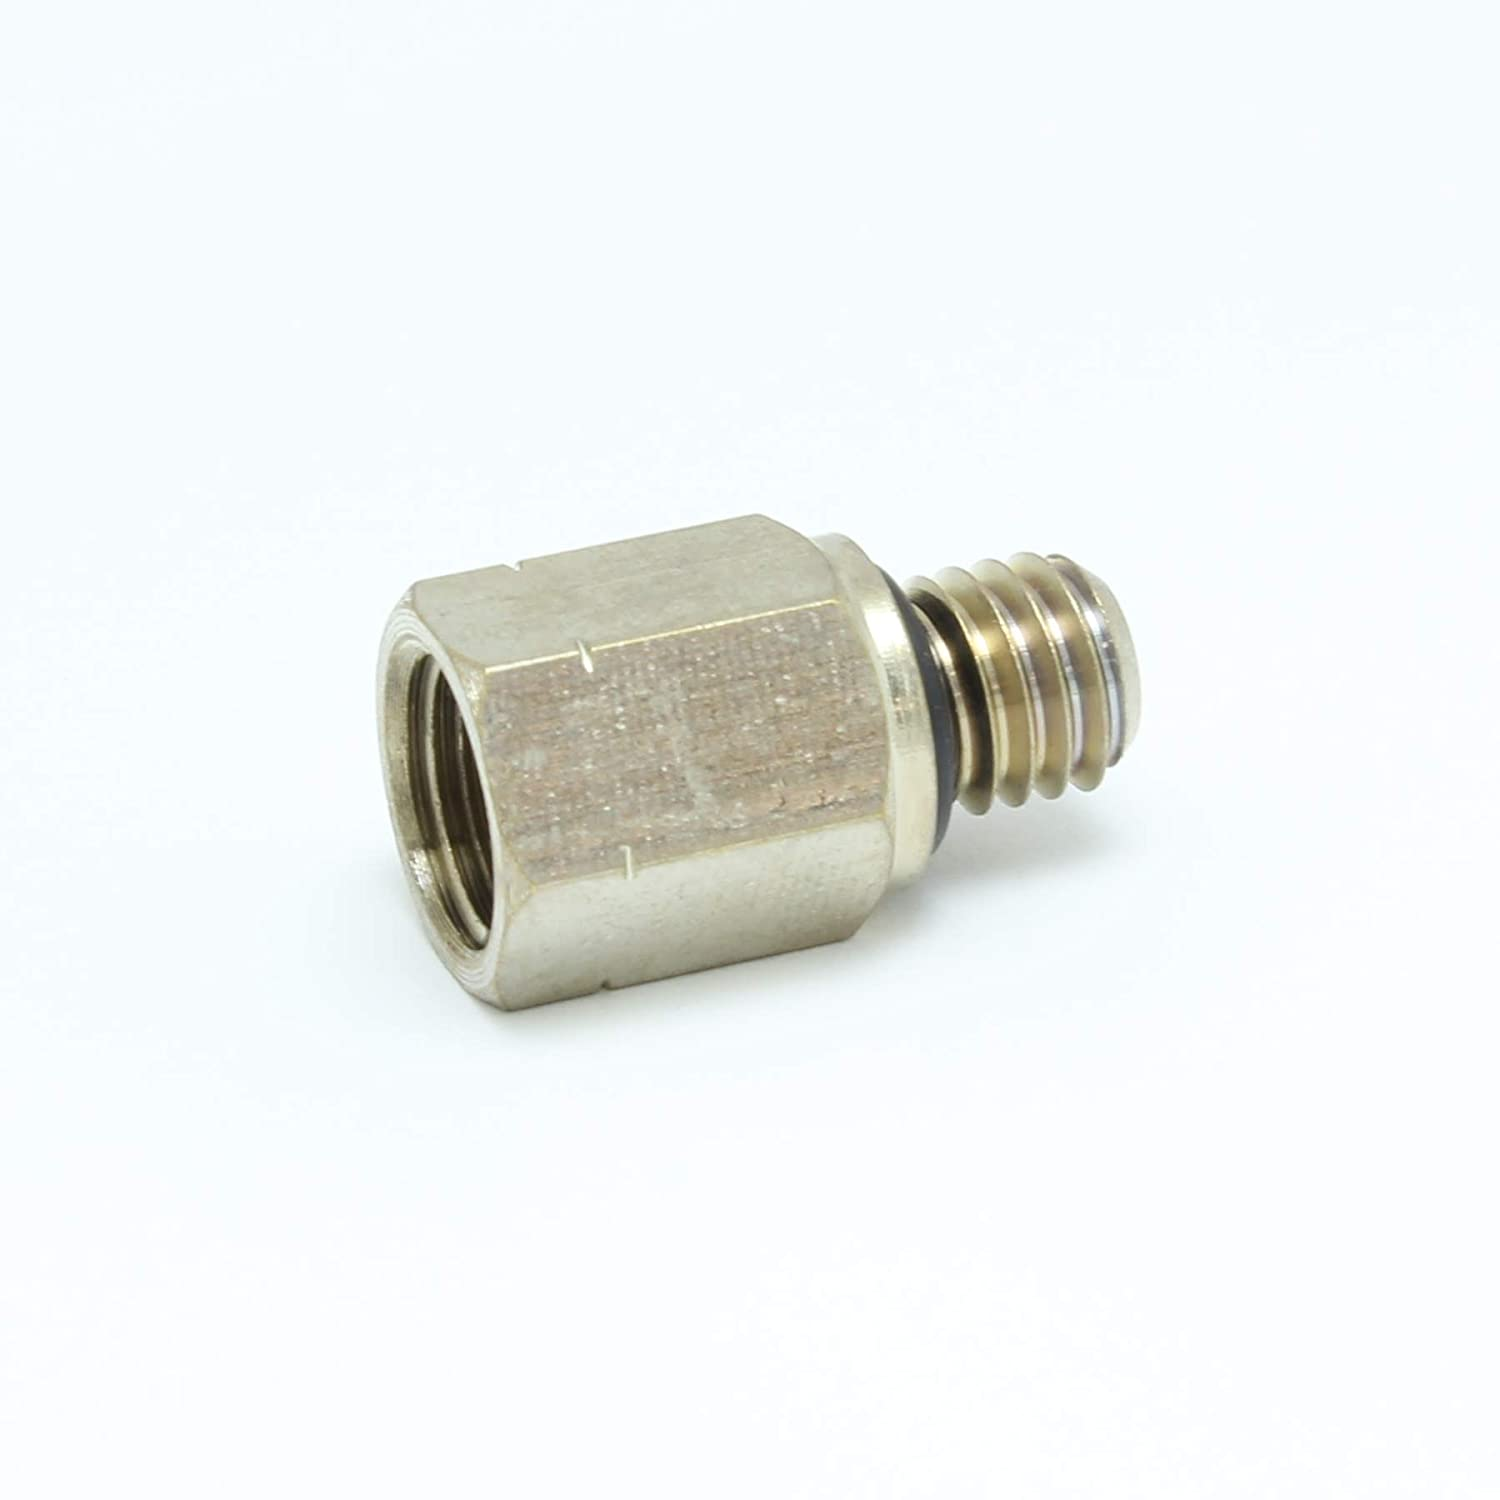 1//8 NPT Female to M8 Male Nickel Plated Brass Pipe Adaptor//Adapter Straight Reducer Coupling